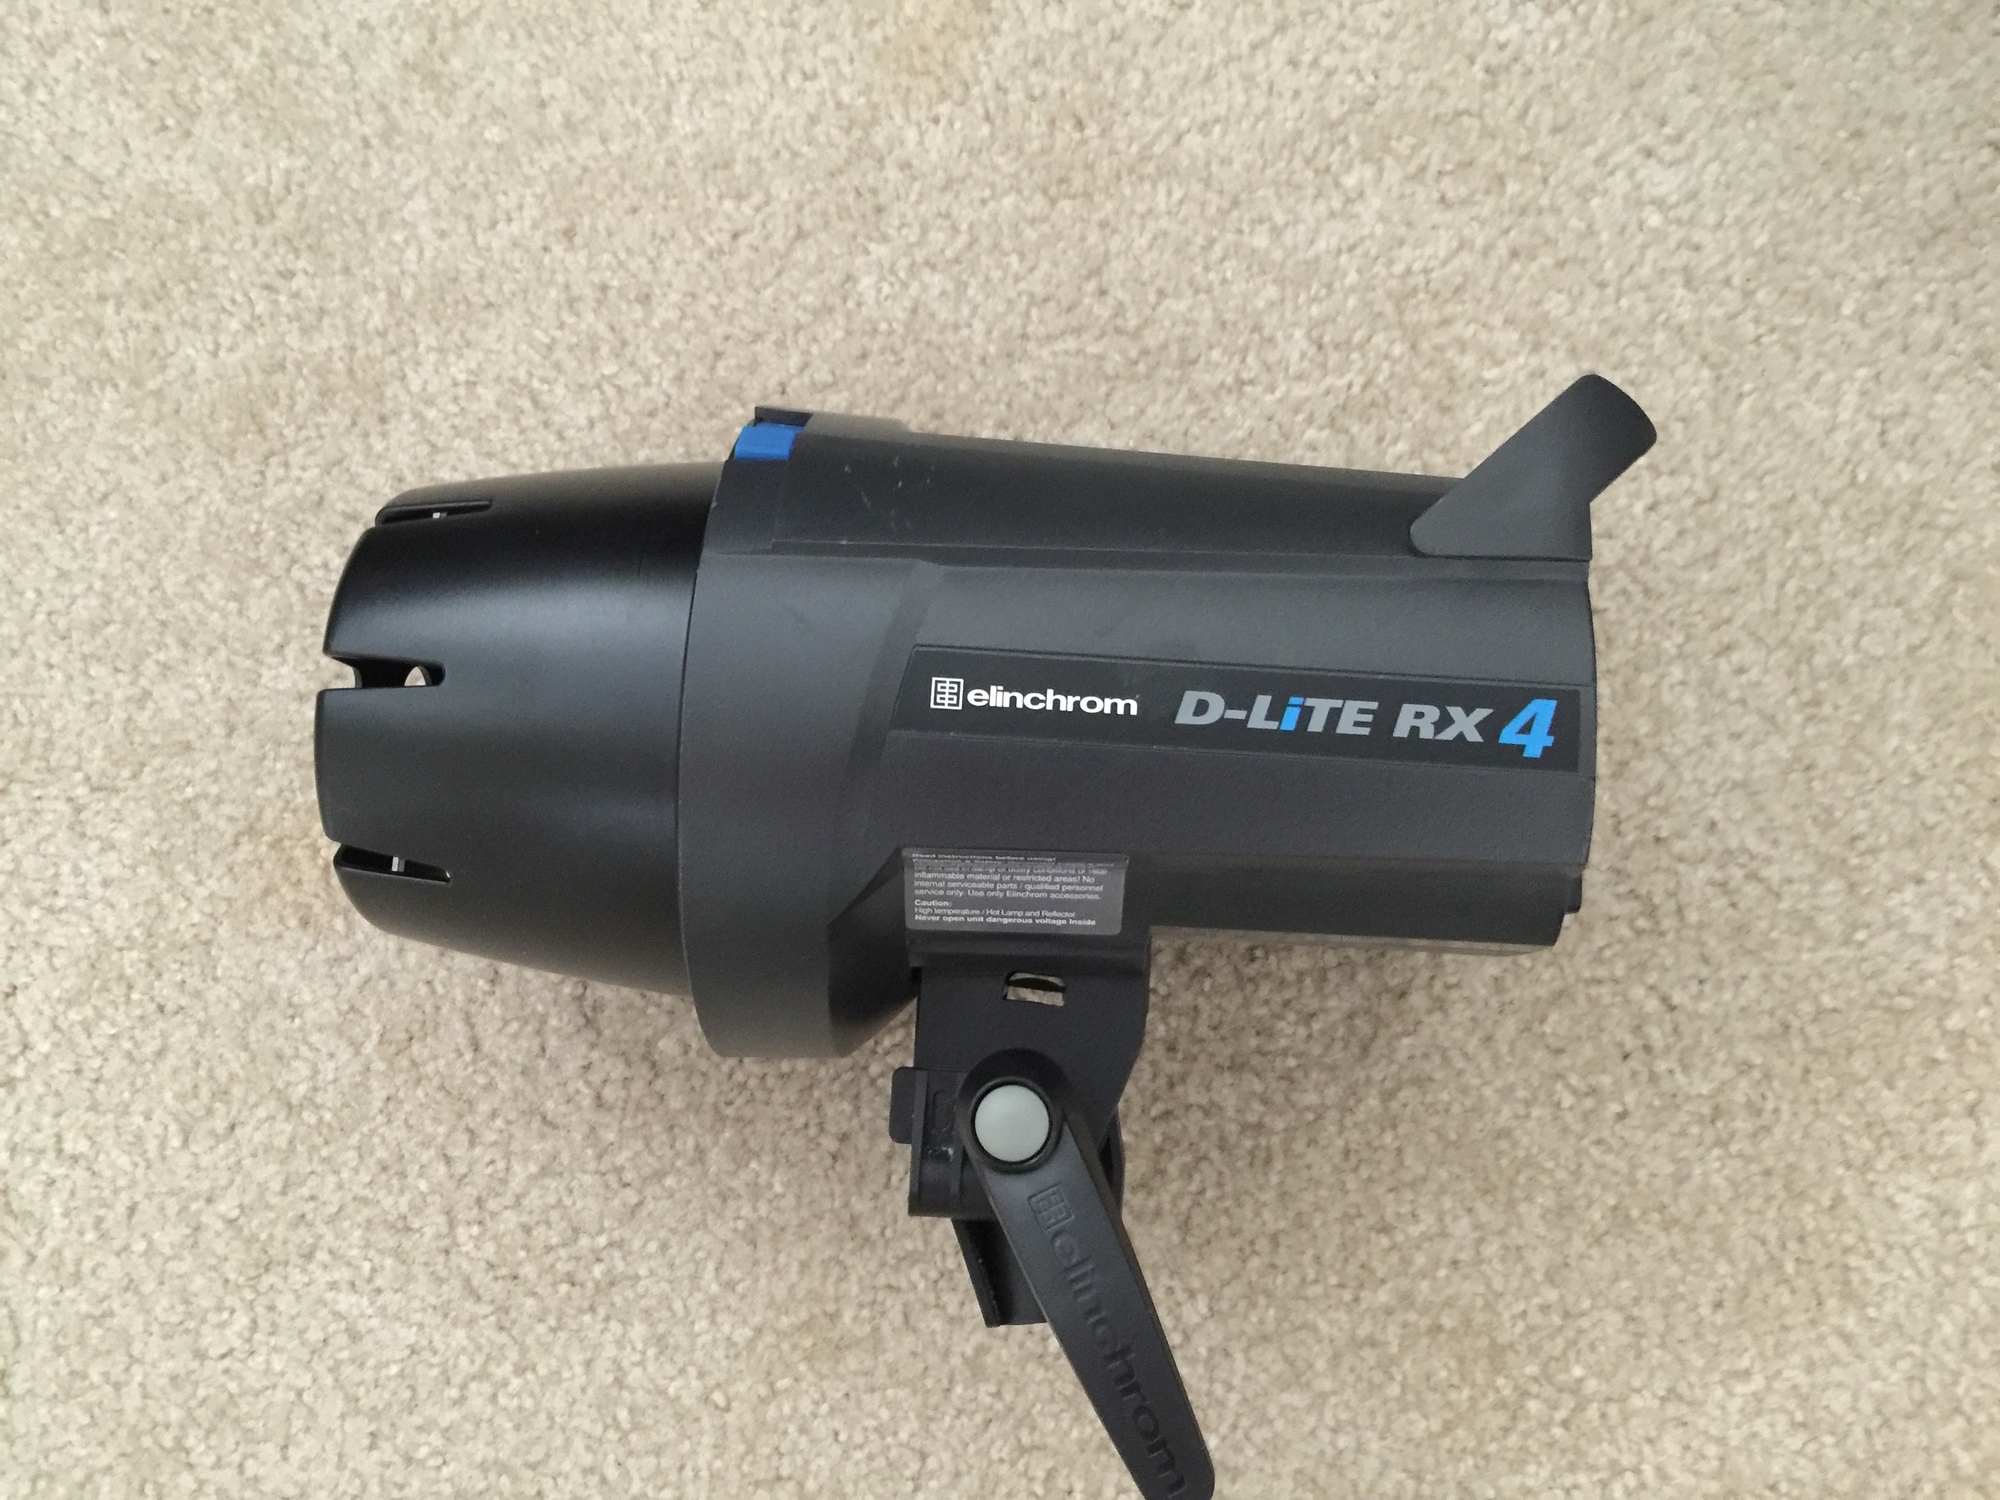 Sold elinchrom d lite rx 4 for sale trade fm forums - Elinchrom d lite rx 4 price in india ...